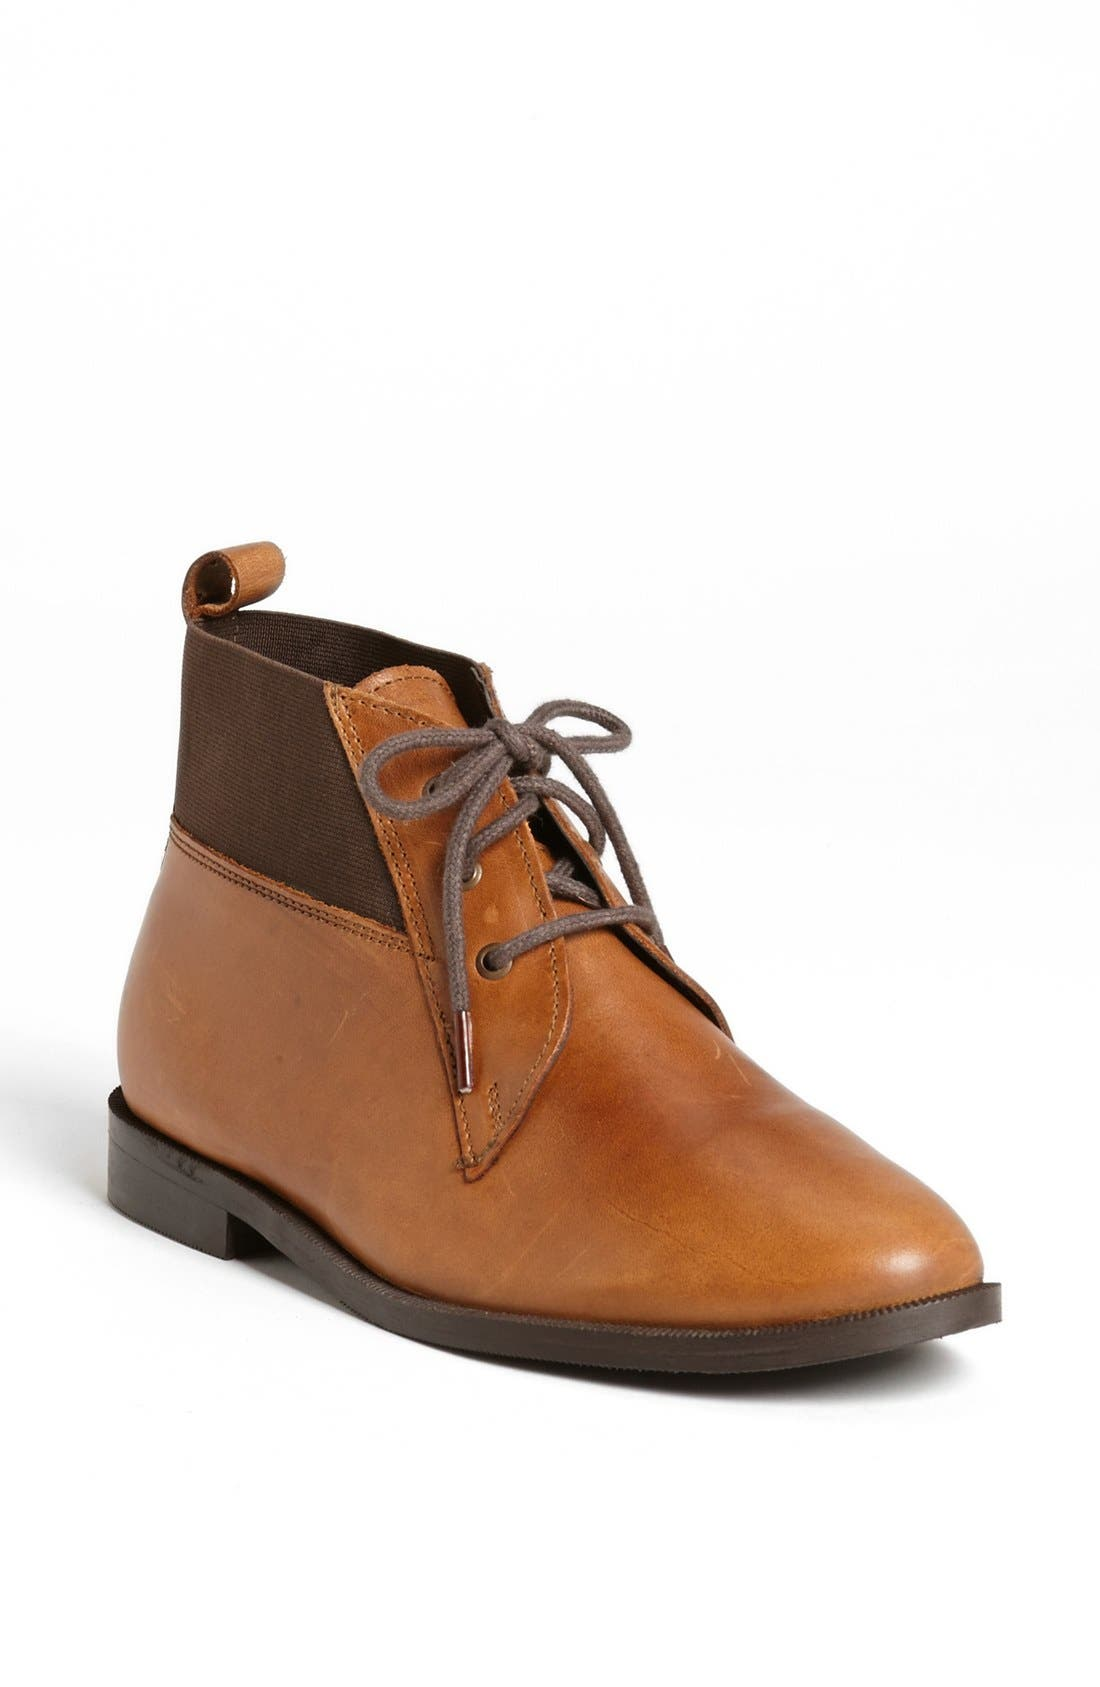 Alternate Image 1 Selected - Topshop 'Model' Ankle Boot